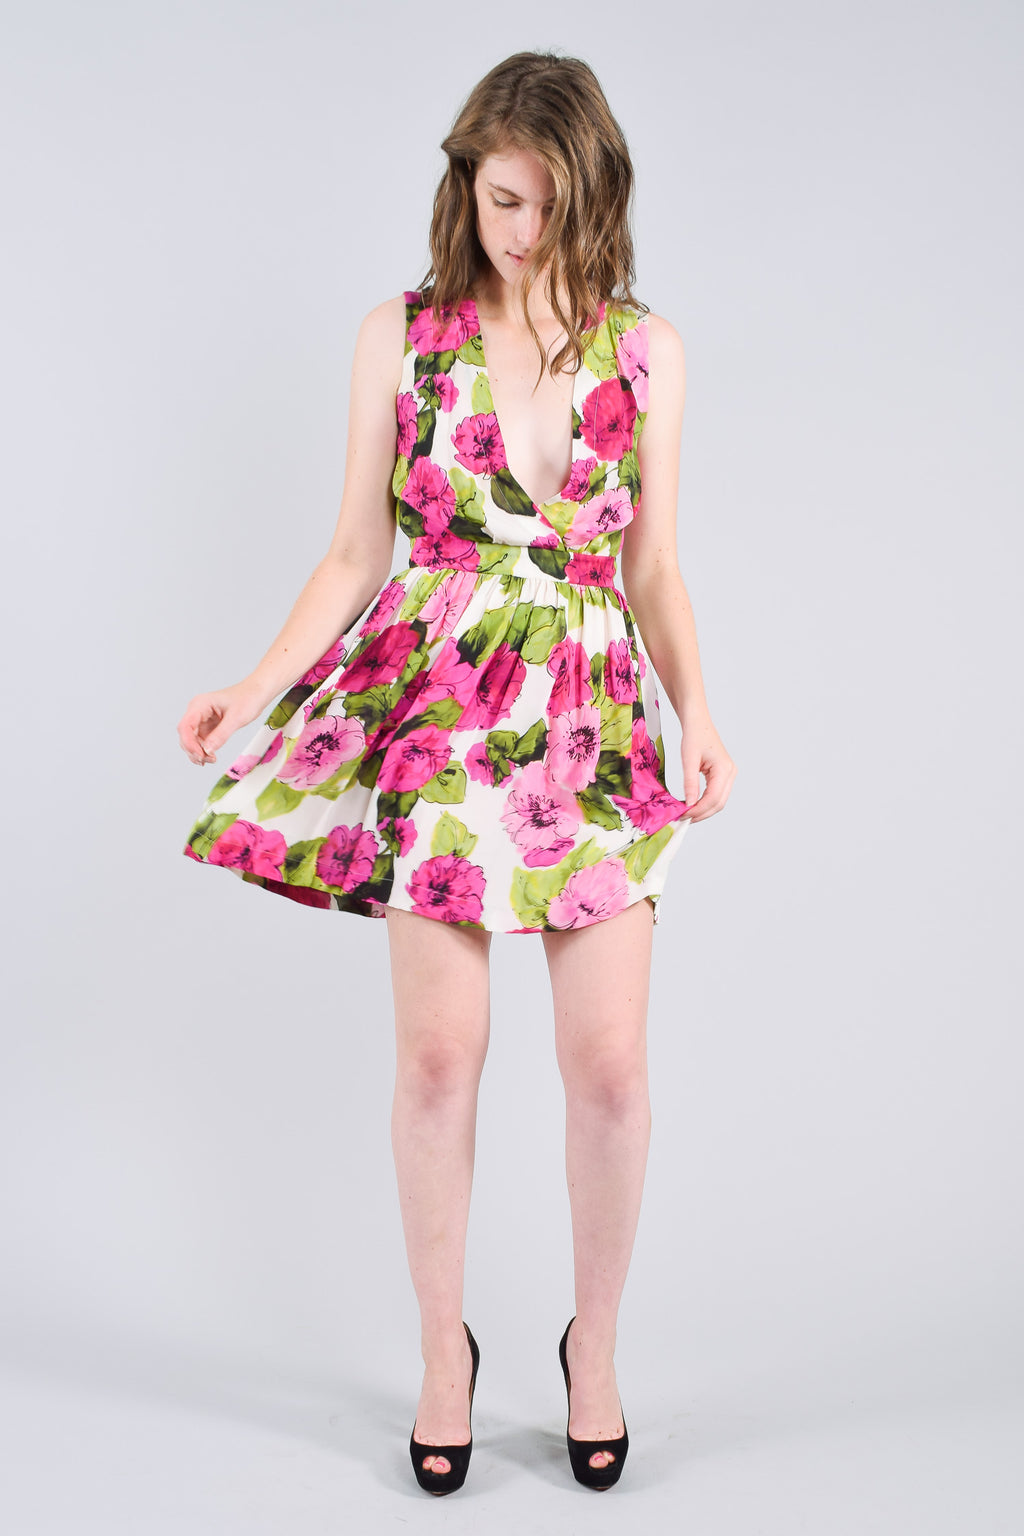 Dolce & Gabbana D&G Pink and Green Floral Dress Size 40